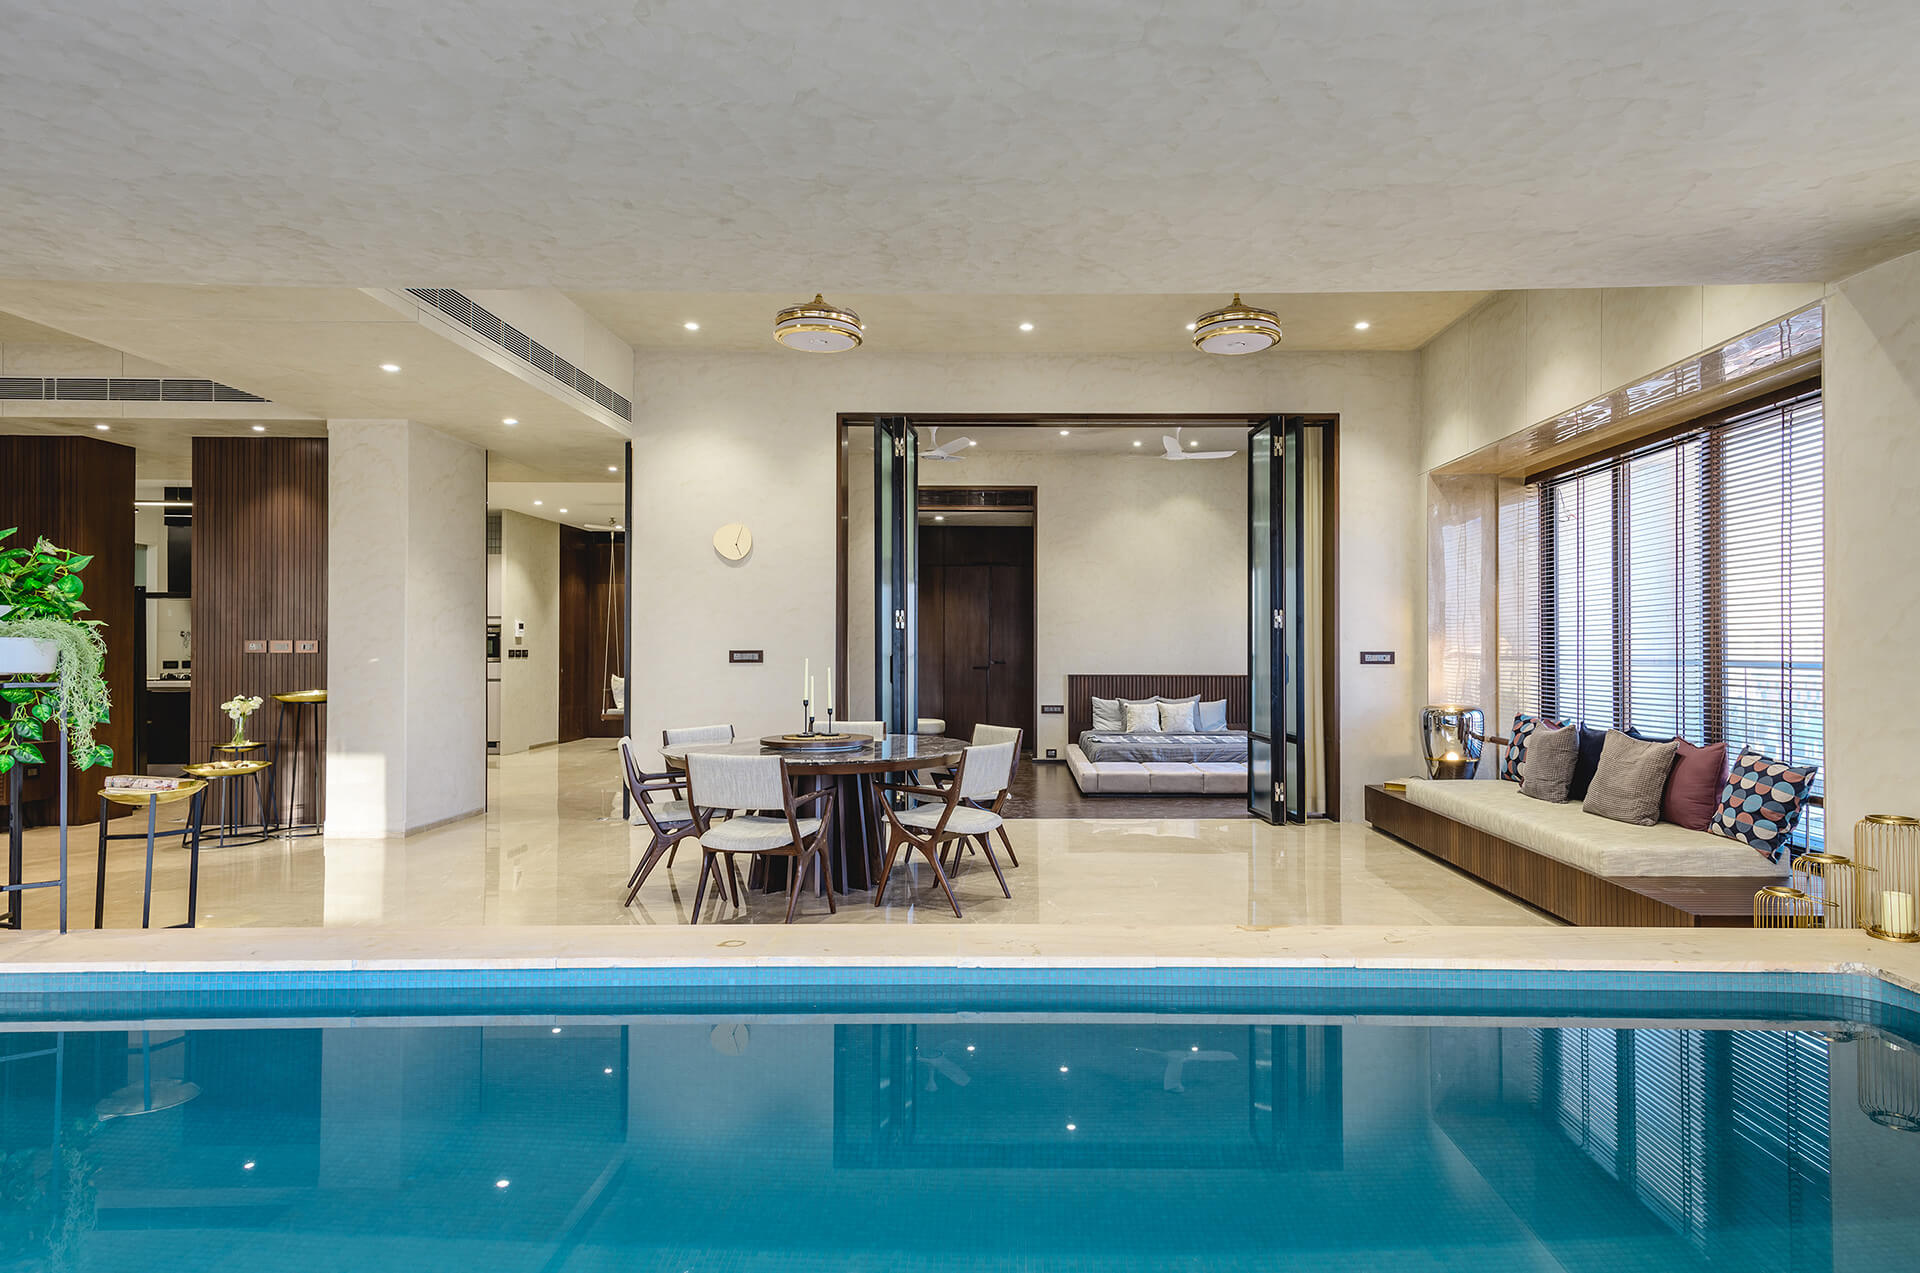 View of the dining area from the pool | Neogenesis + Studi0261 | India | STIRworld